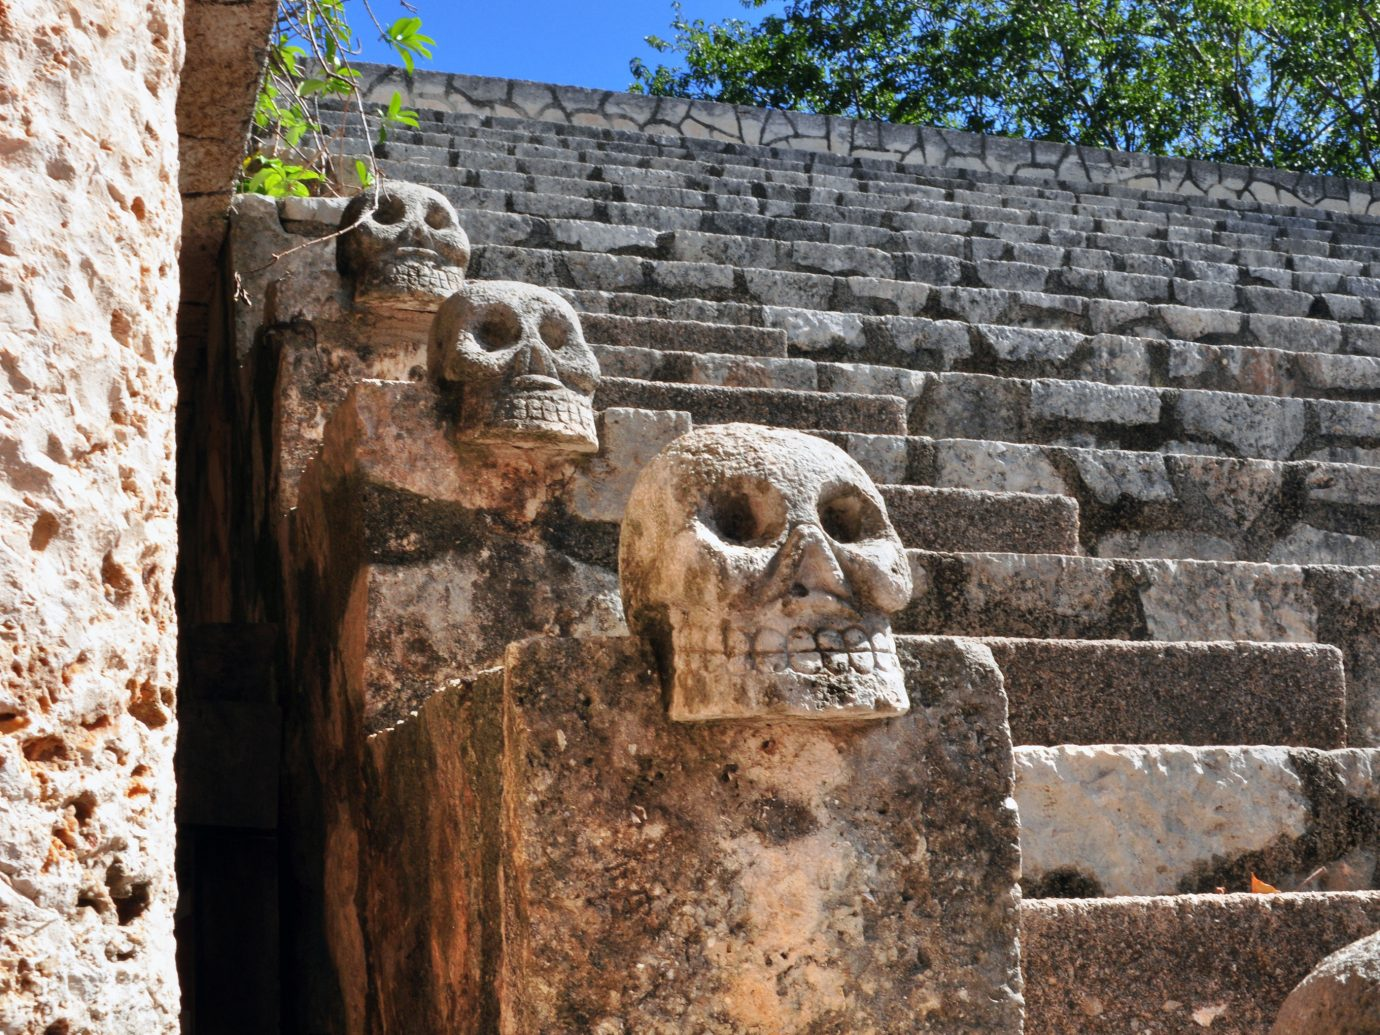 City Mexico Trip Ideas Tulum wall rock stone outdoor archaeological site ancient history Ruins brick historic site building material stone carving sculpture history carving monument temple middle ages tourism memorial relief old